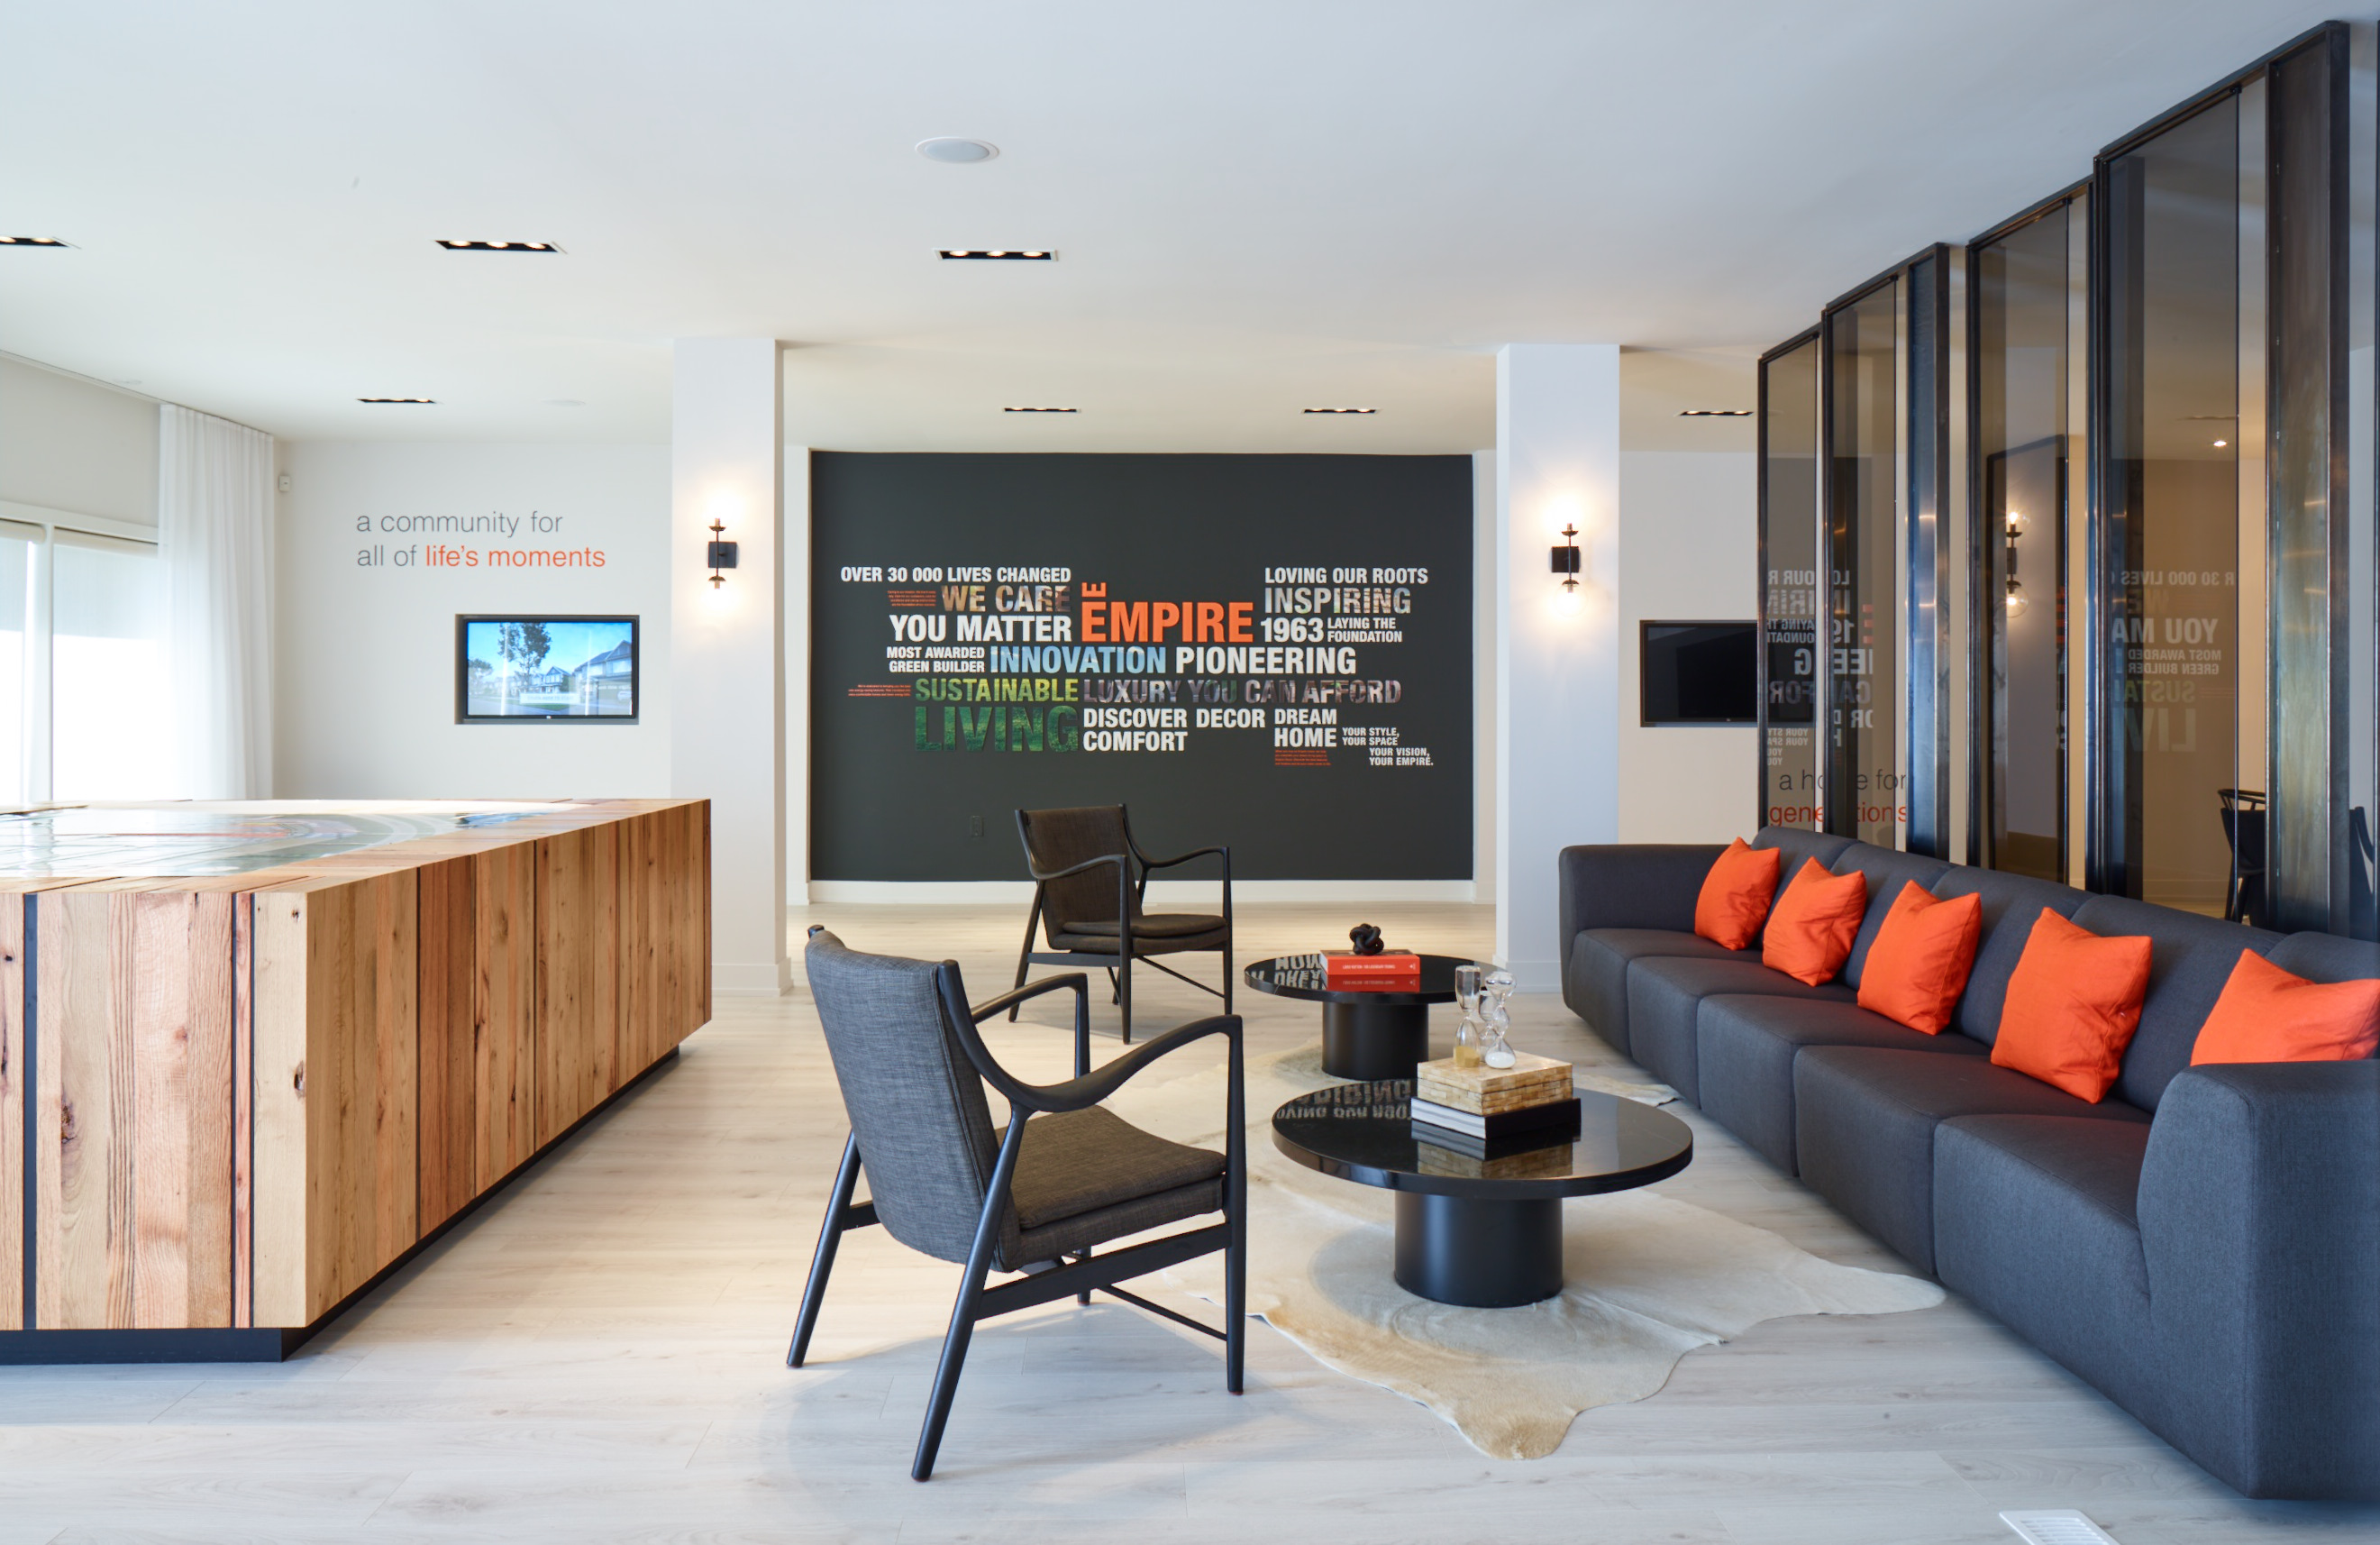 Empire Legacy reception area with brown wood desk, dark grey sofa, and graphic wall with inspirational text collage